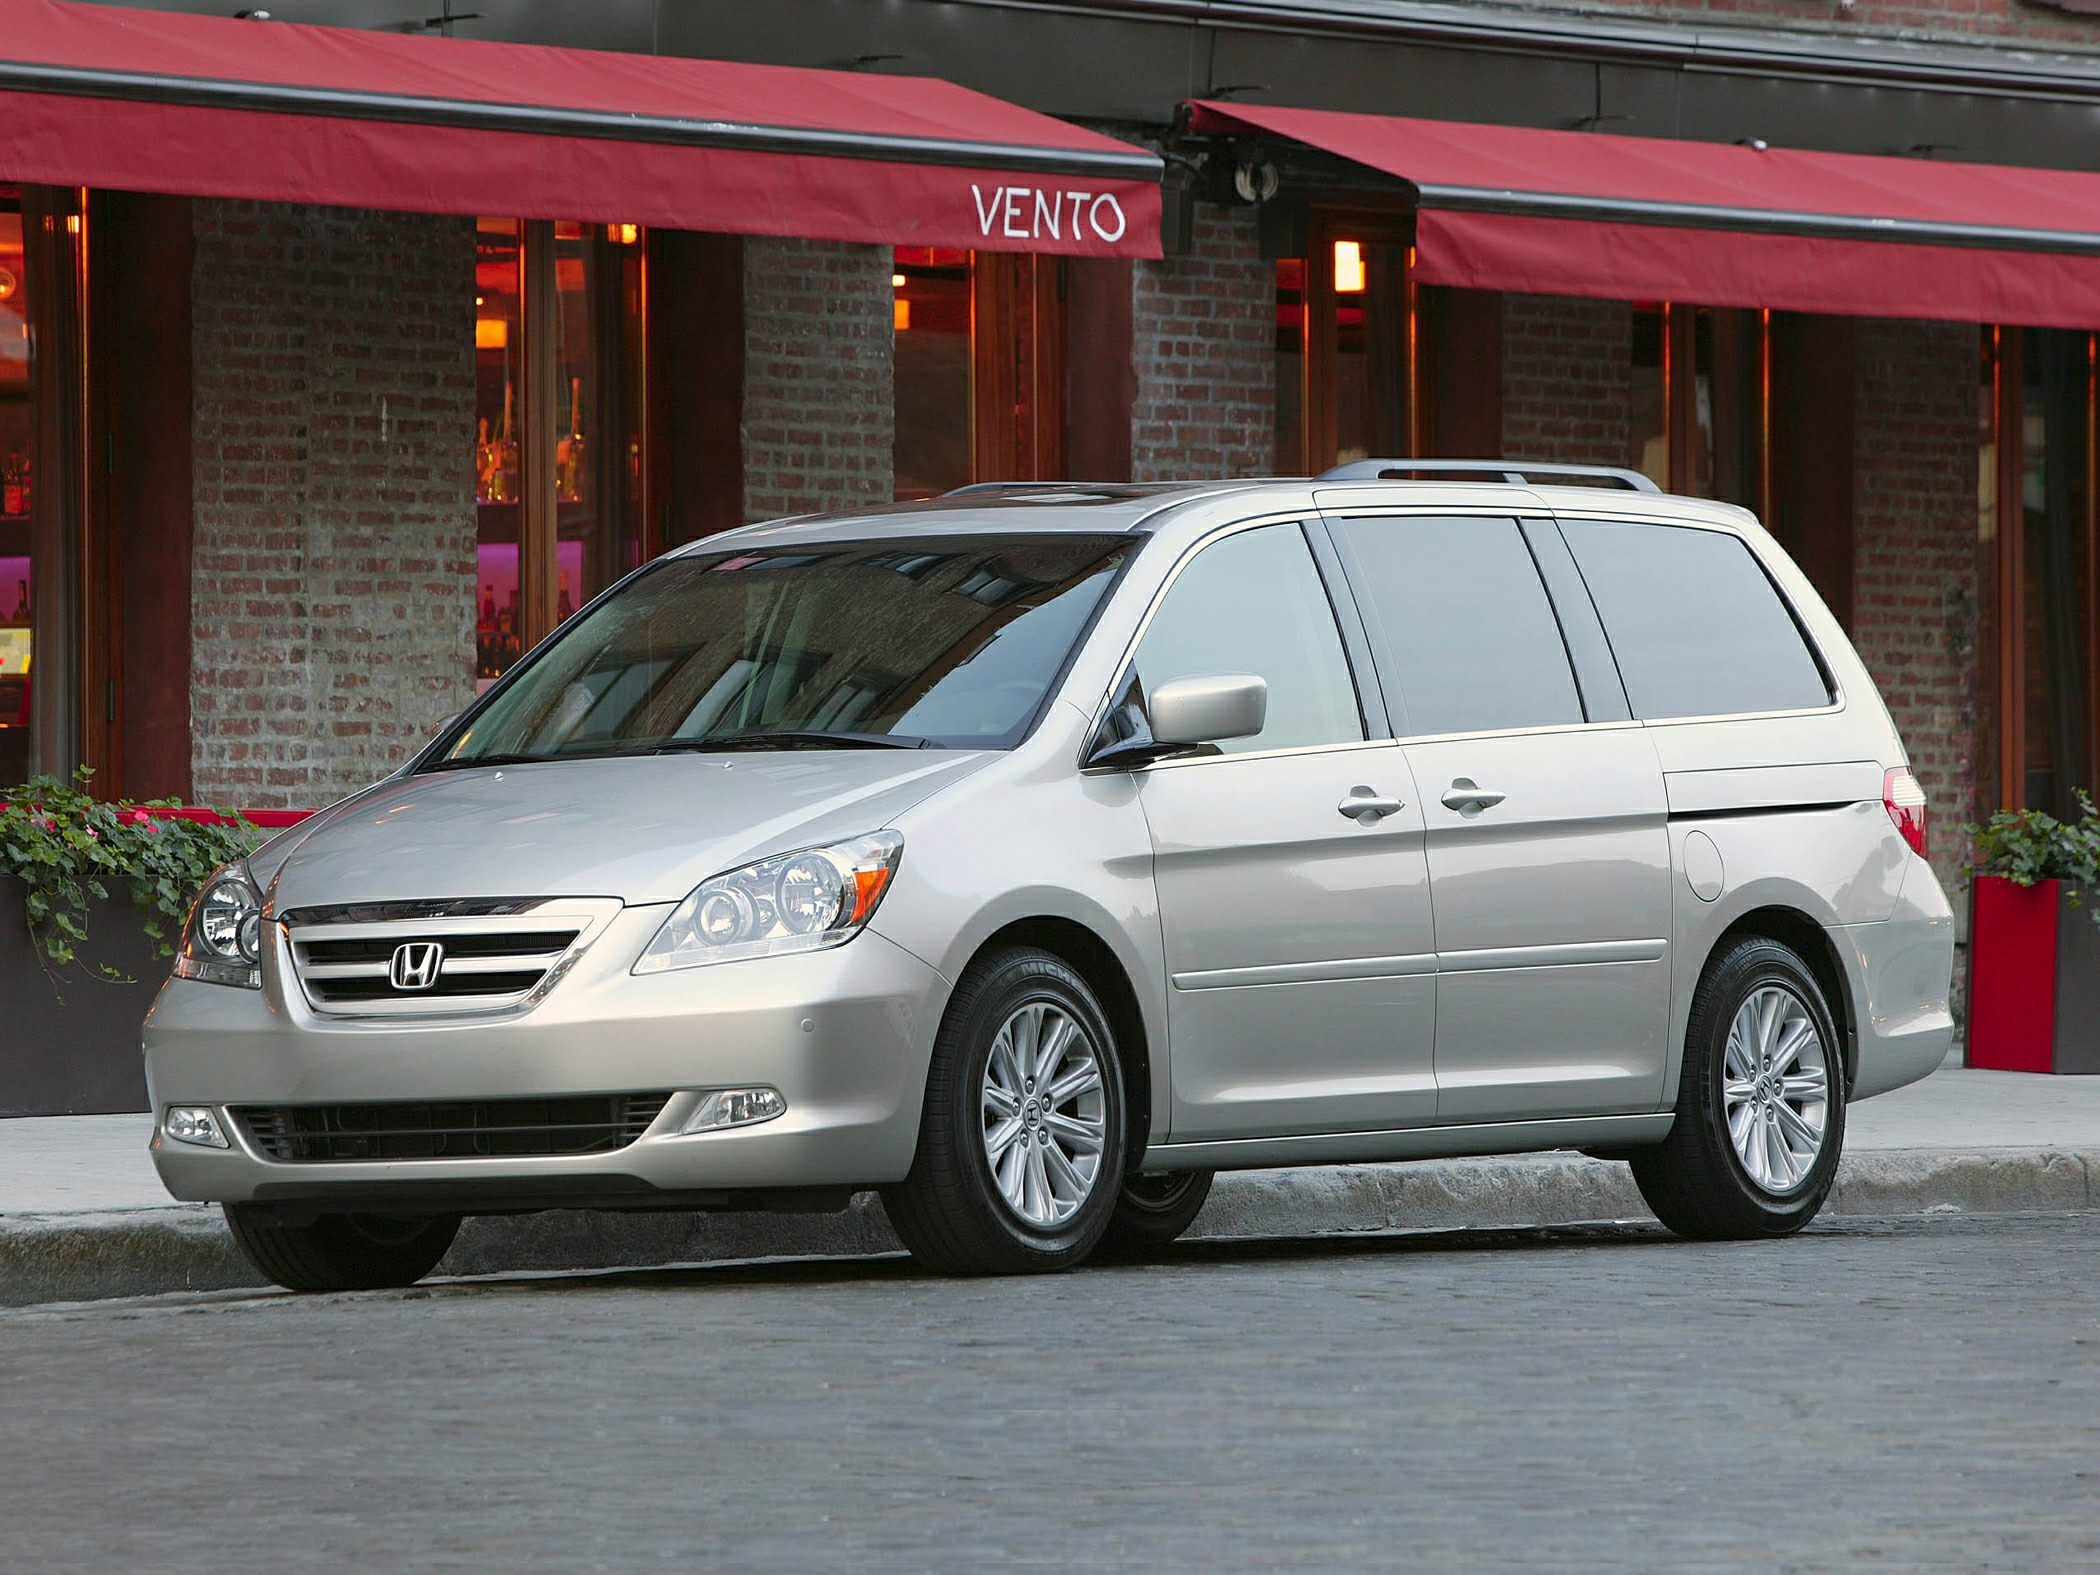 2007 honda odyssey information. Black Bedroom Furniture Sets. Home Design Ideas